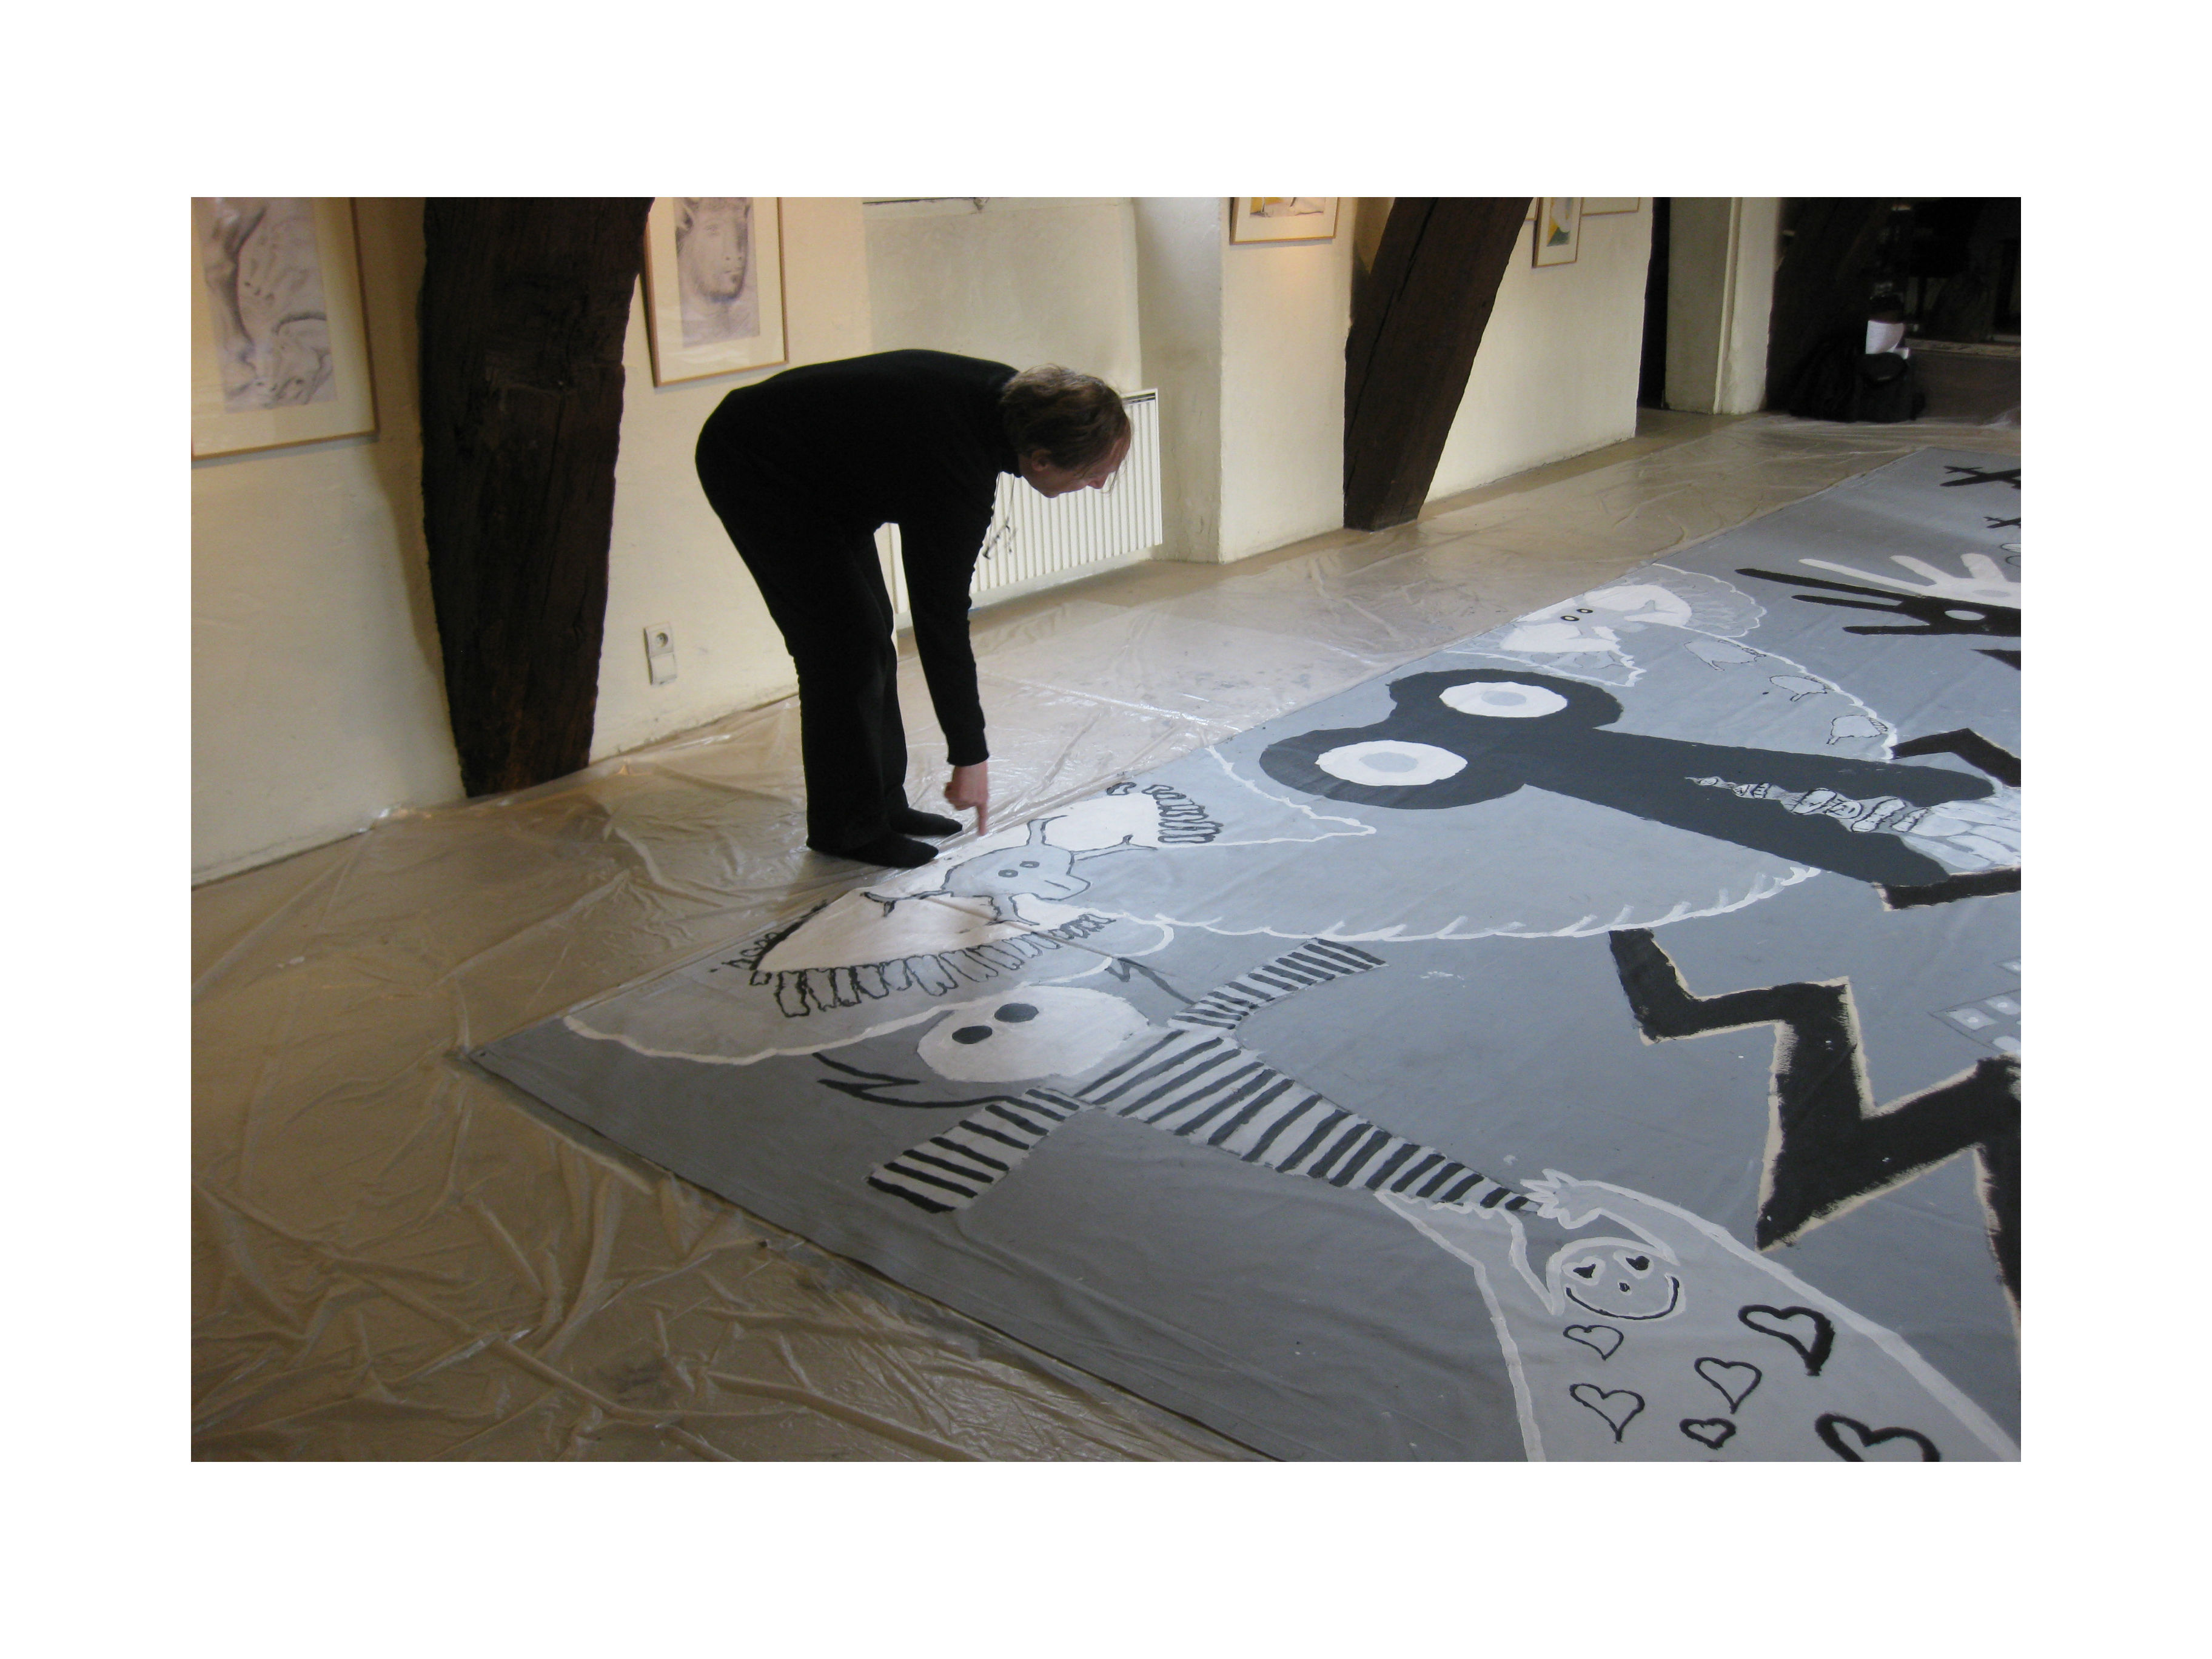 Staging the black and white mural create on the canvas can be seen white sheets of paper which contained sketches of children they were selected and meant to be drawn and then painted onto the buycottarizona Gallery